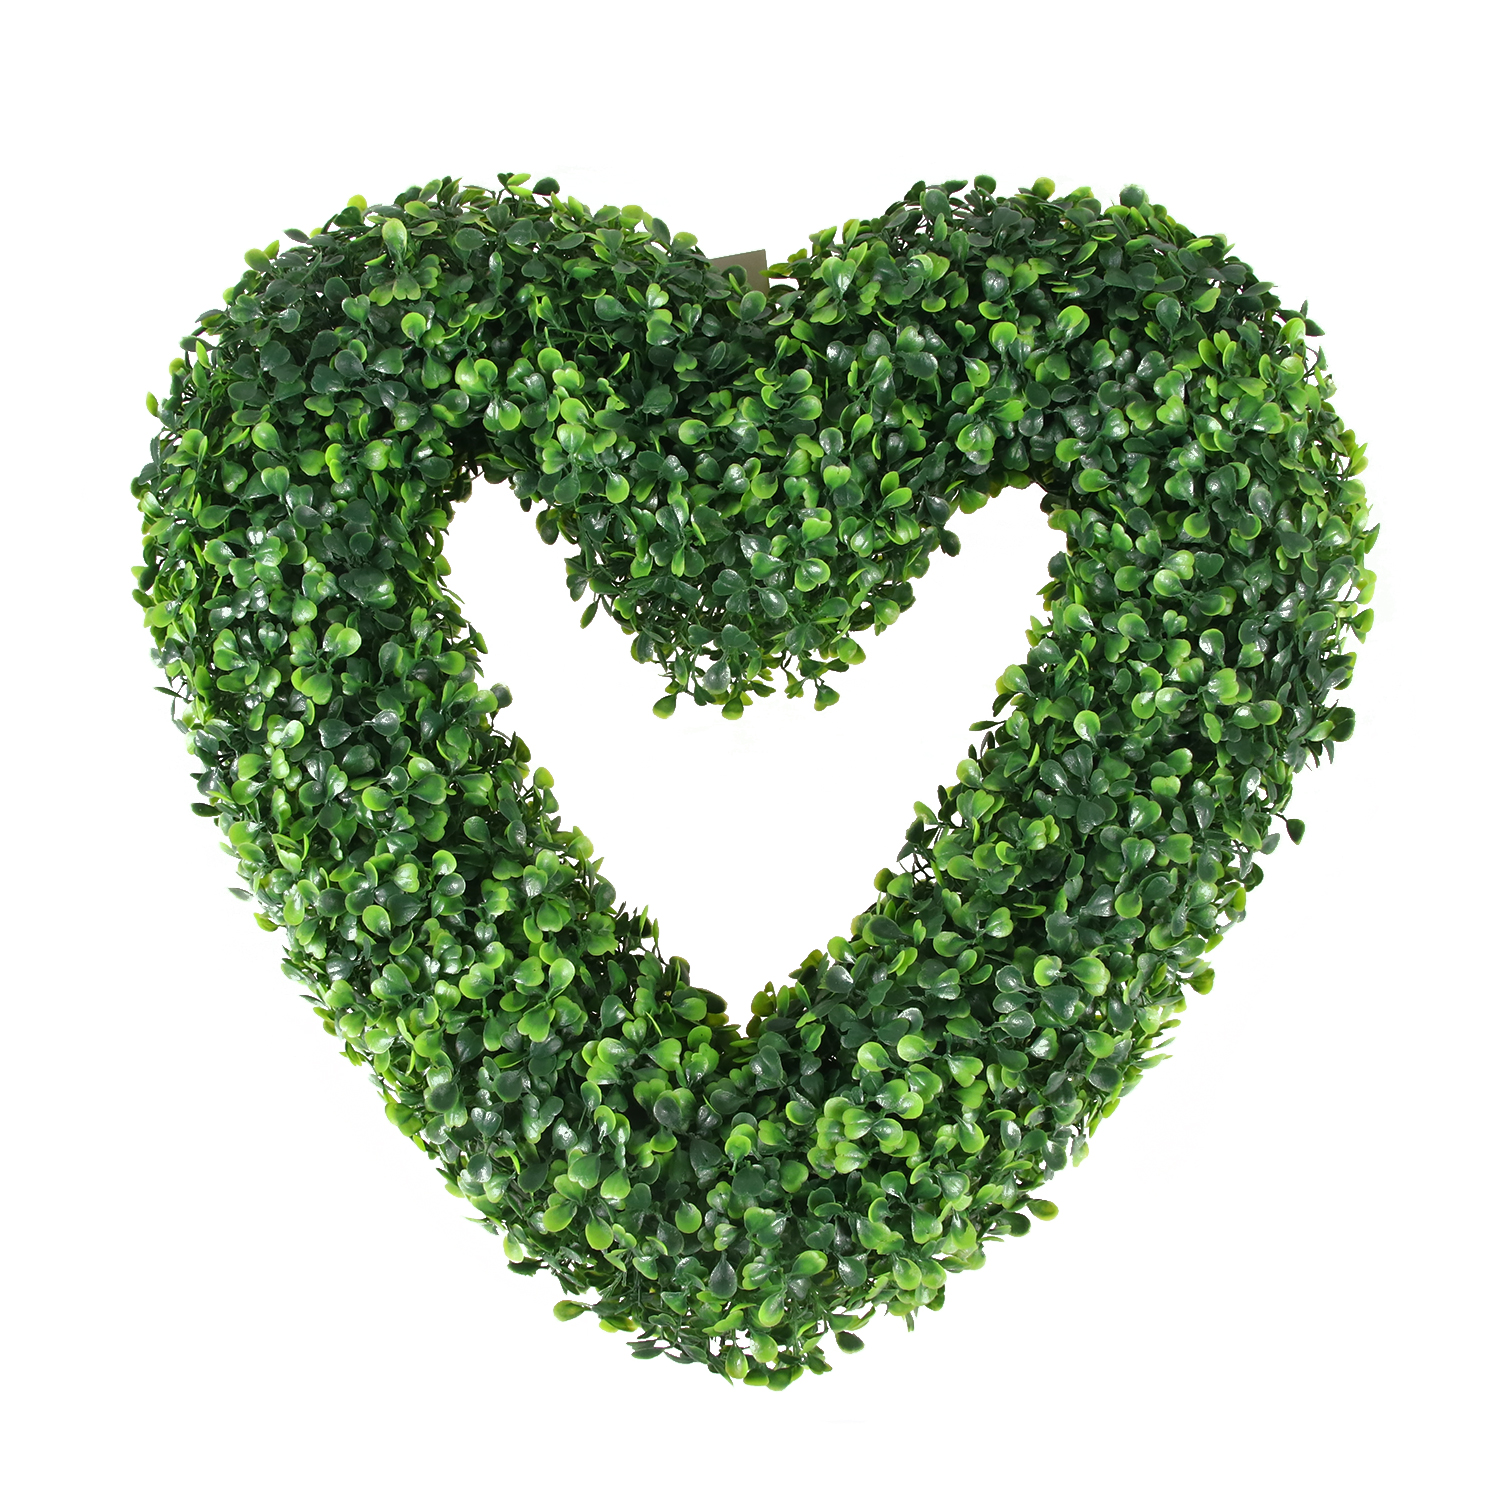 Artificial Round Shape Boxwood Topiary Flower Heart Shaped Wreath For Decor Buy Artificial Green Wreaths Artificial Flower Wreaths Heart Shaped Wreath Product On Alibaba Com